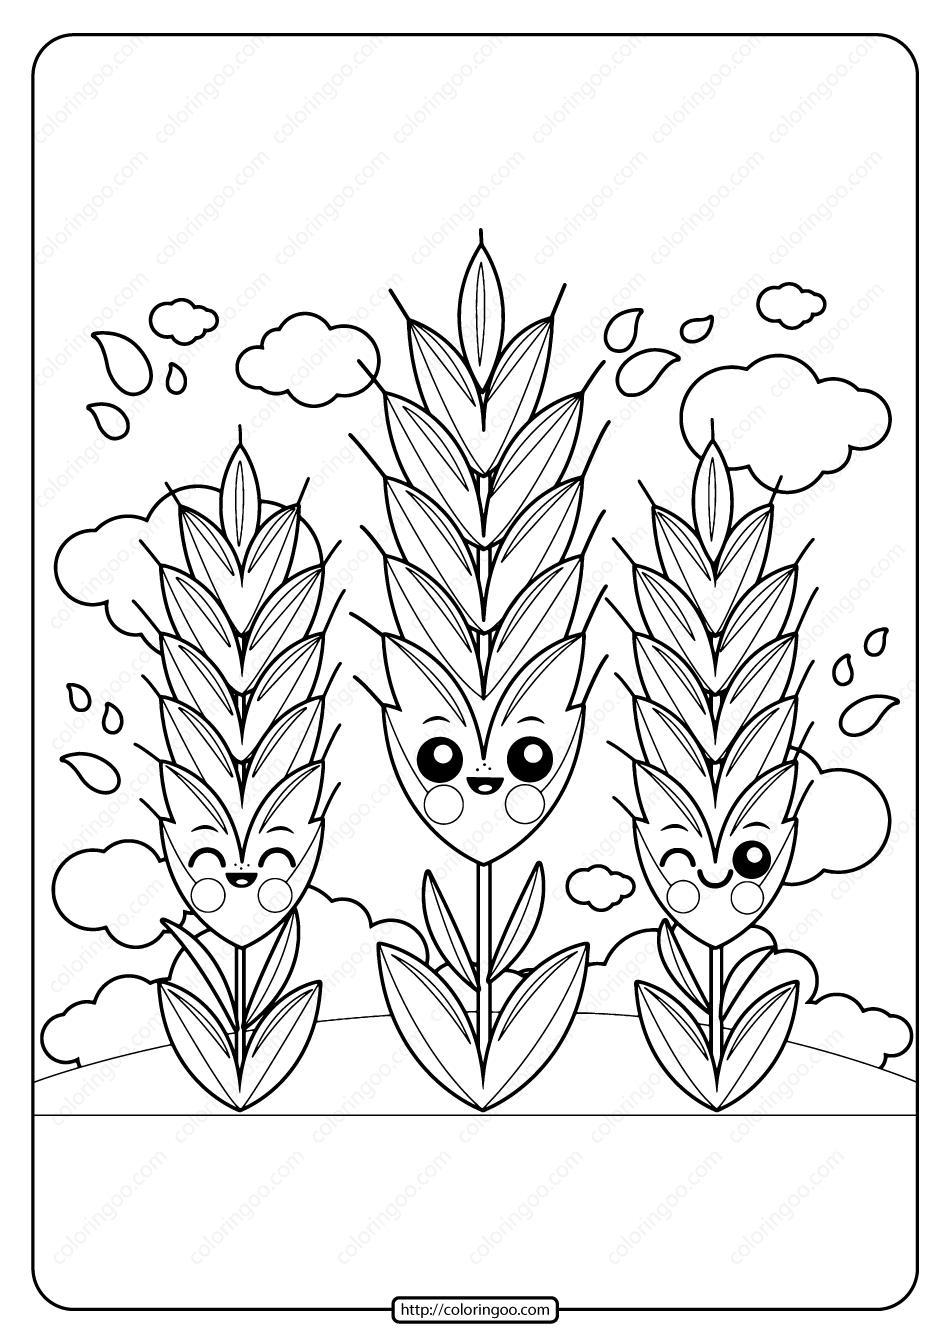 Printable Cute Wheat Pdf Coloring Page